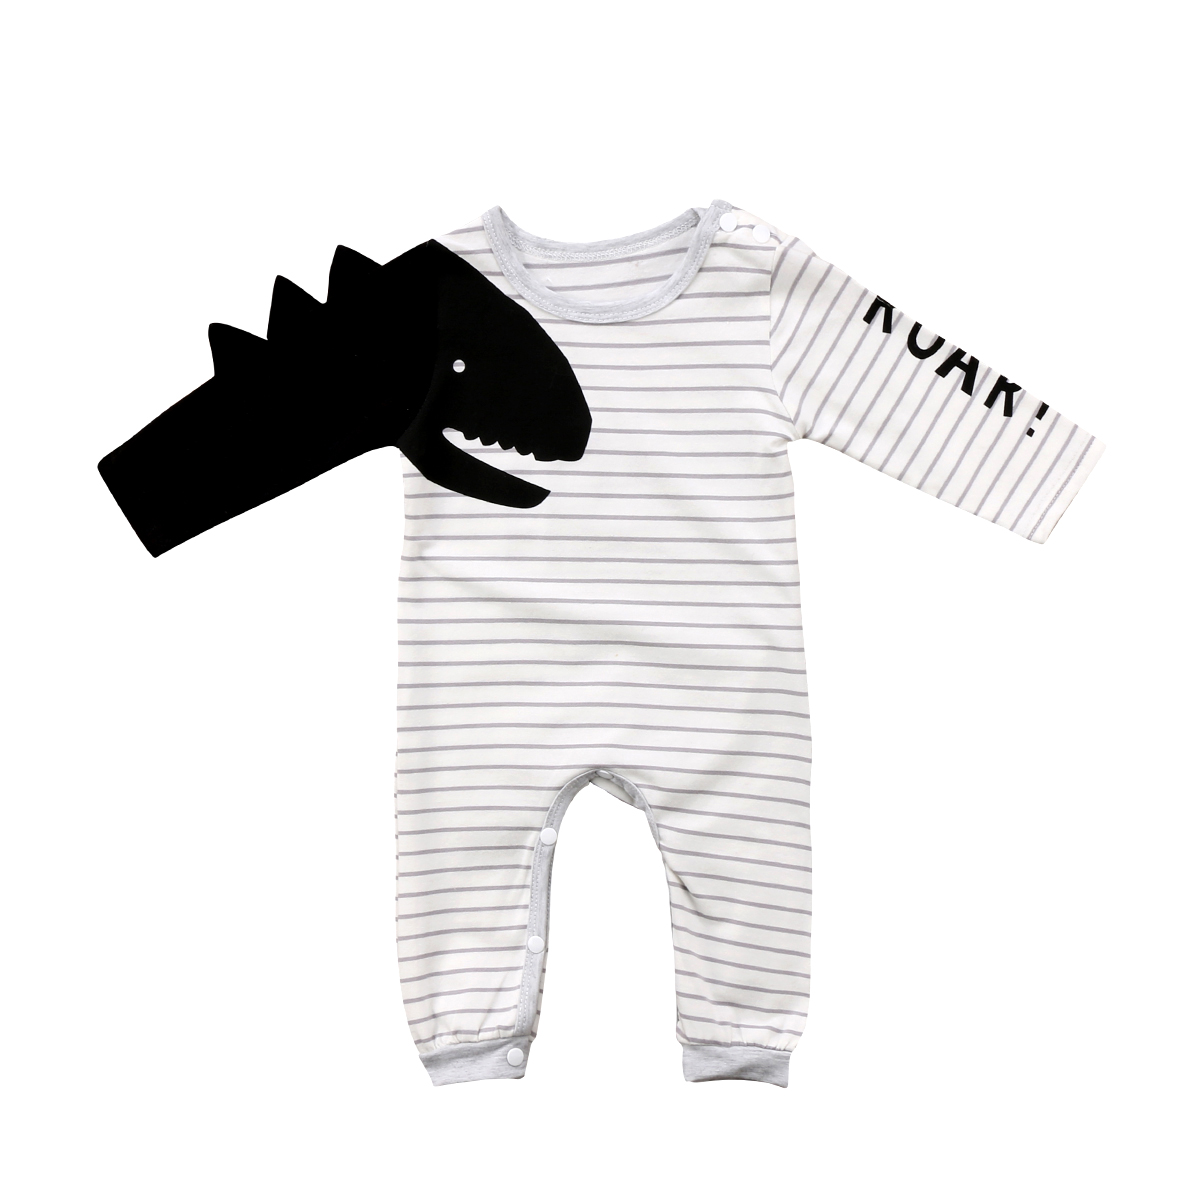 Newborn Baby Boy Girls Clothing Striped Romper Long Sleeve Cotton Cute Animals Jumpsuit Outfits Clothes cute baby elephant print romper baby boy girl clothing newborn cotton long sleeve romper jumpsuit 2017 new baby clothing outfits